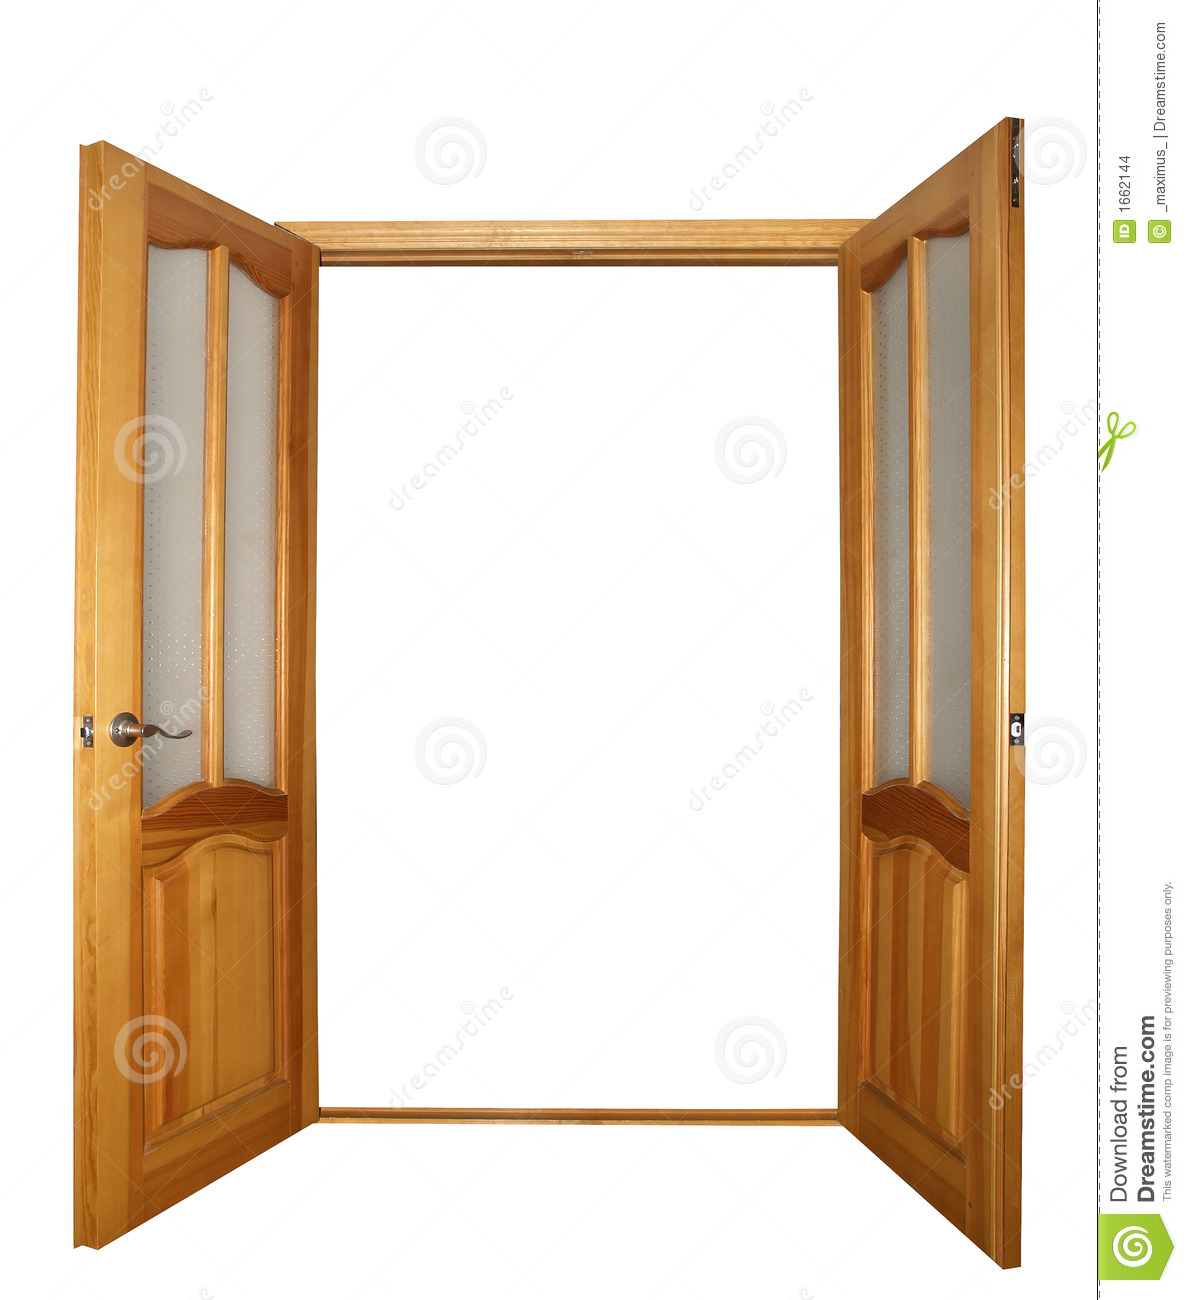 open front door clipart. 1187x1300 open door clipart opening front